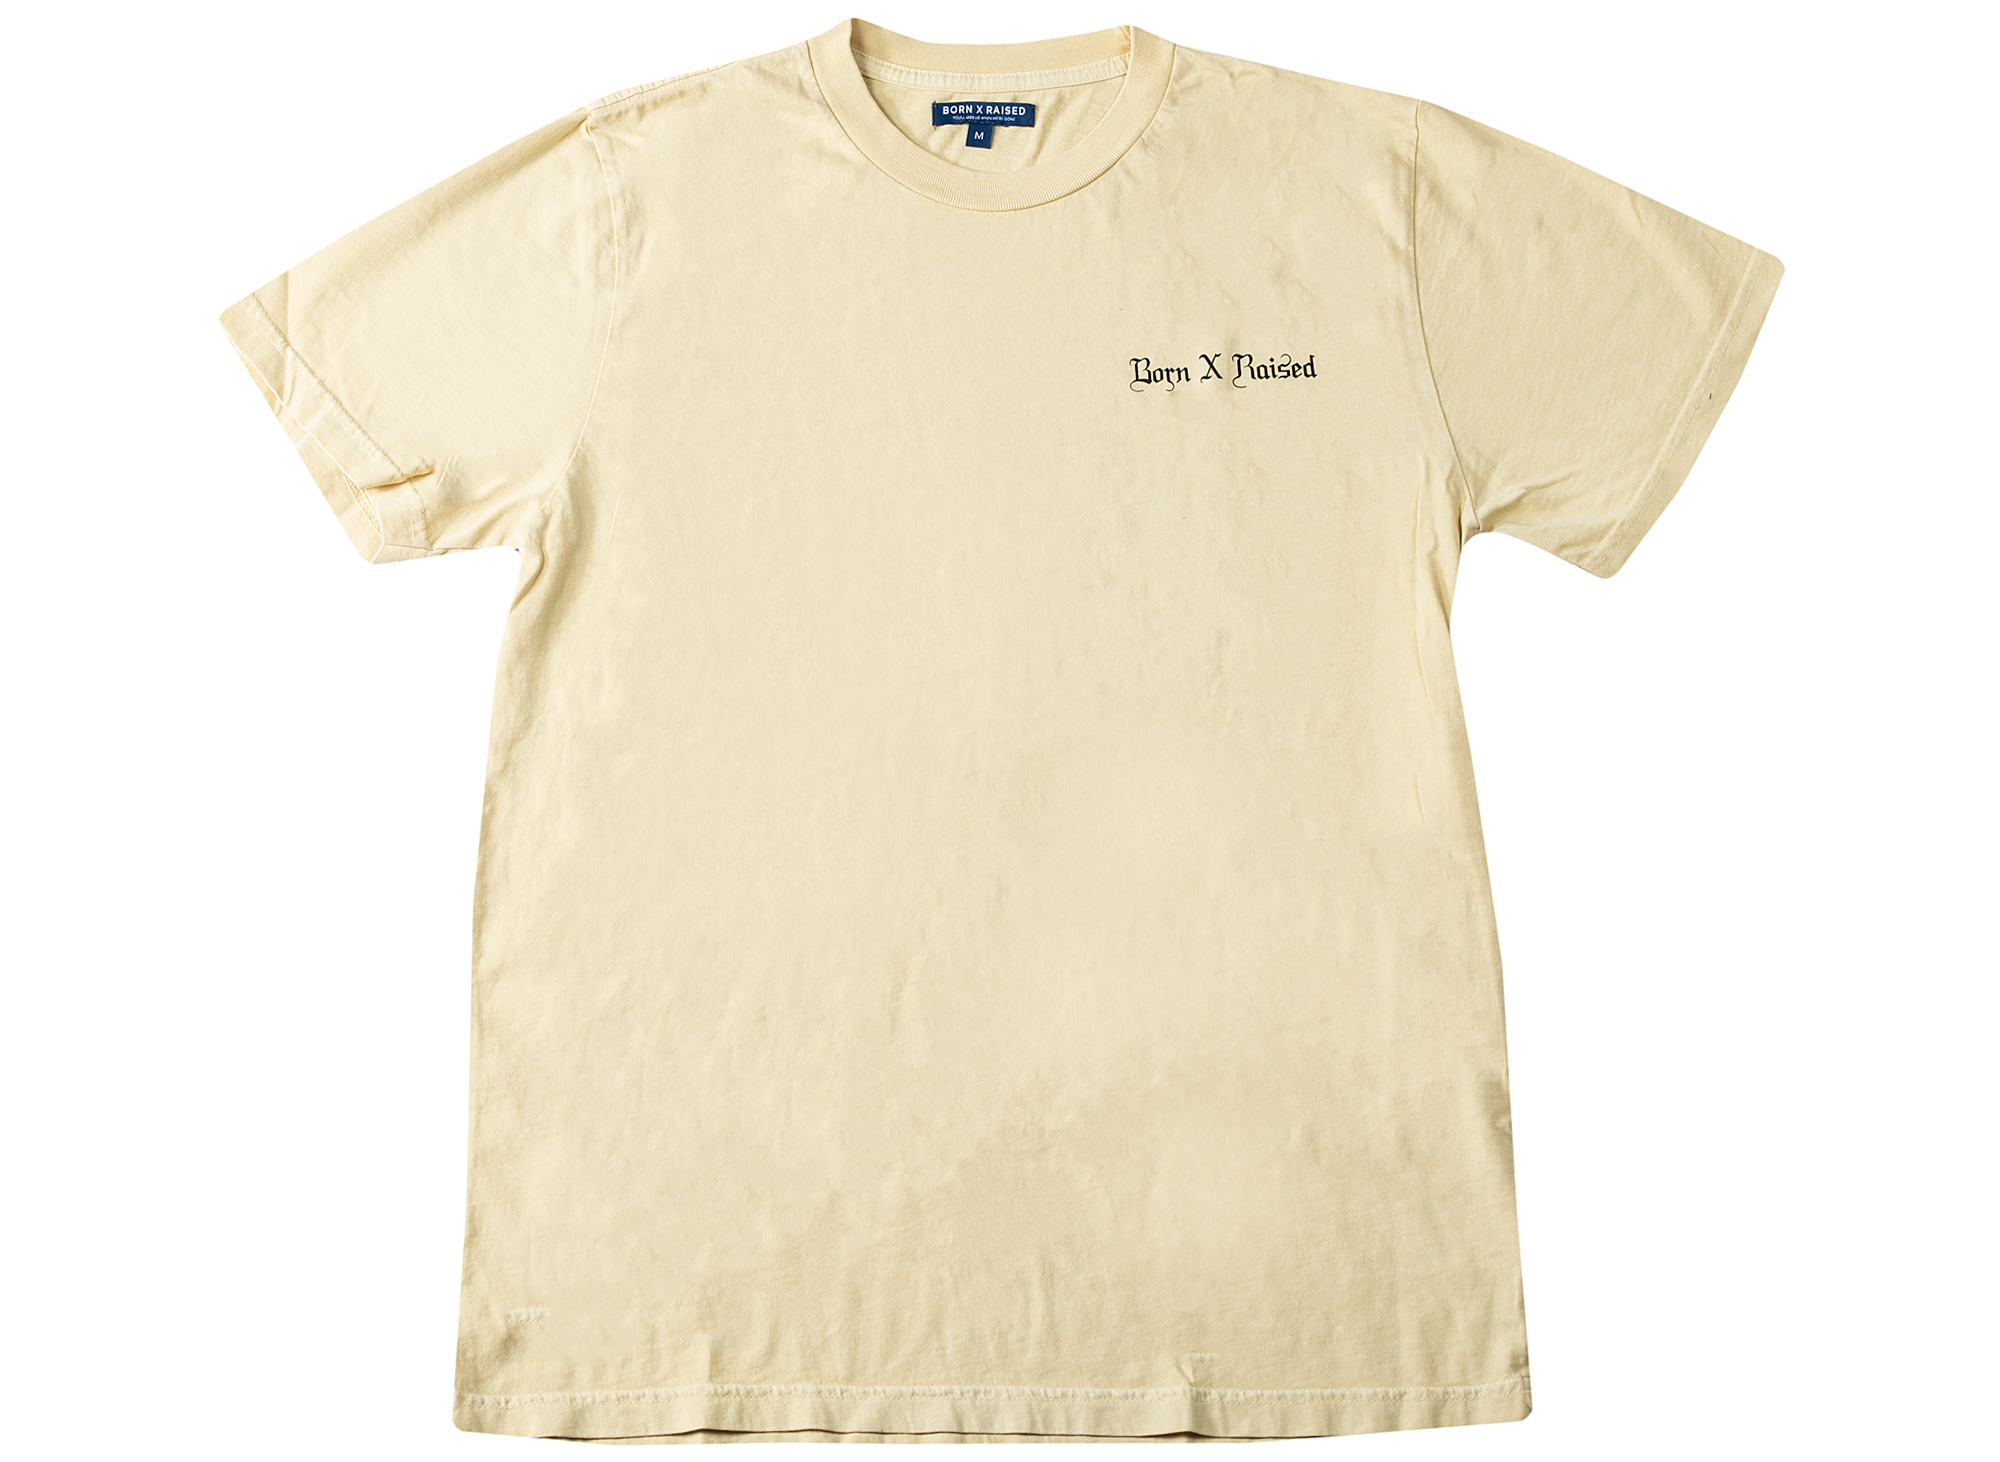 Born x Raised Fuck School Tee in Tan xld